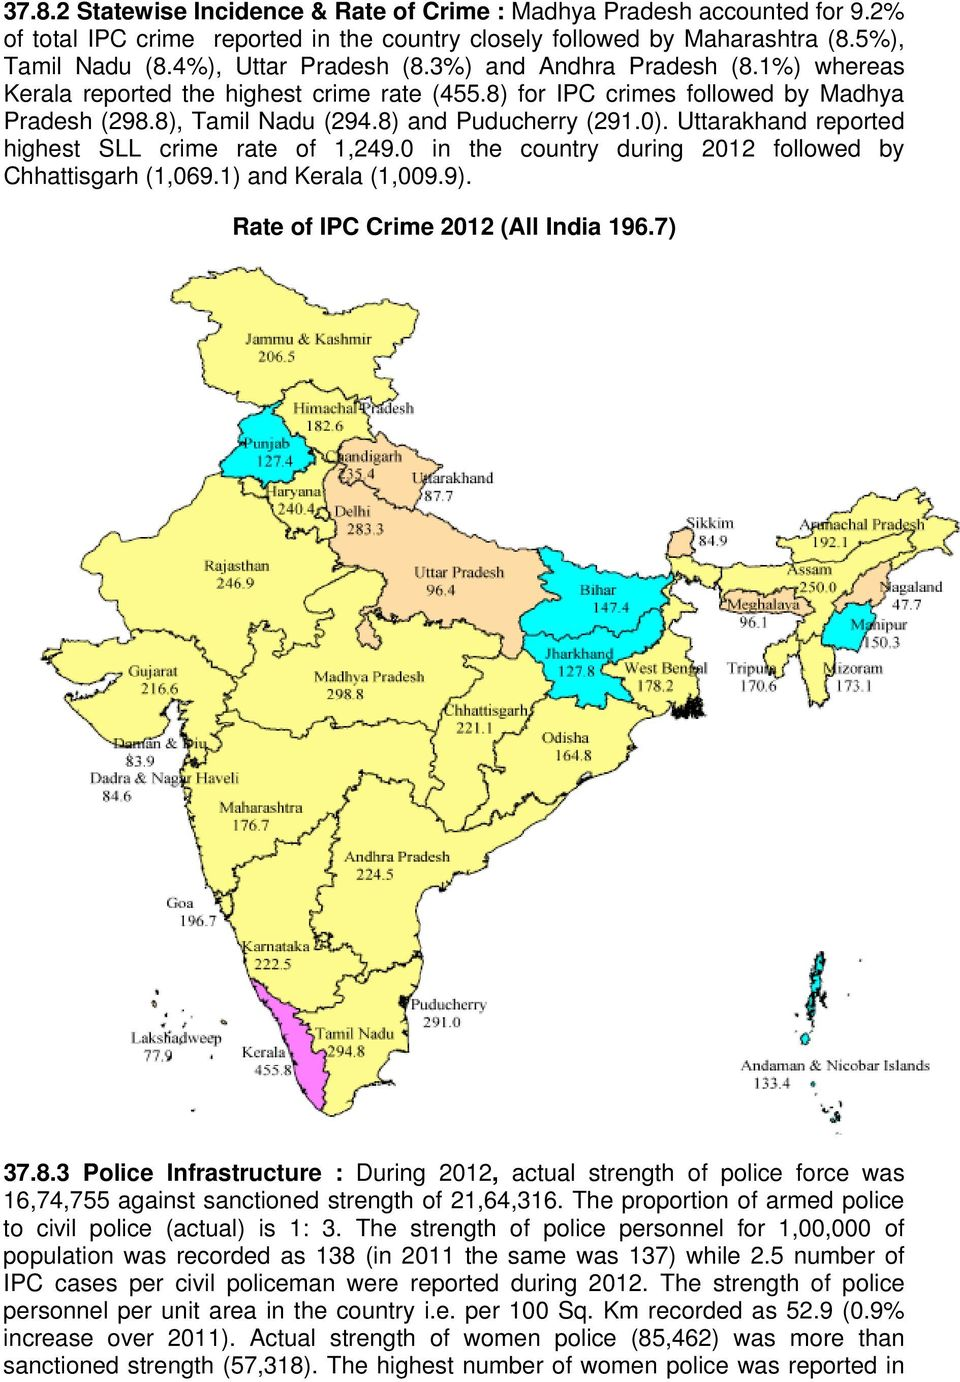 Uttarakhand reported highest SLL crime rate of 1,249.0 in the country during 2012 followed by Chhattisgarh (1,069.1) and Kerala (1,009.9). Rate of IPC Crime 2012 (All India 196.7) 37.8.